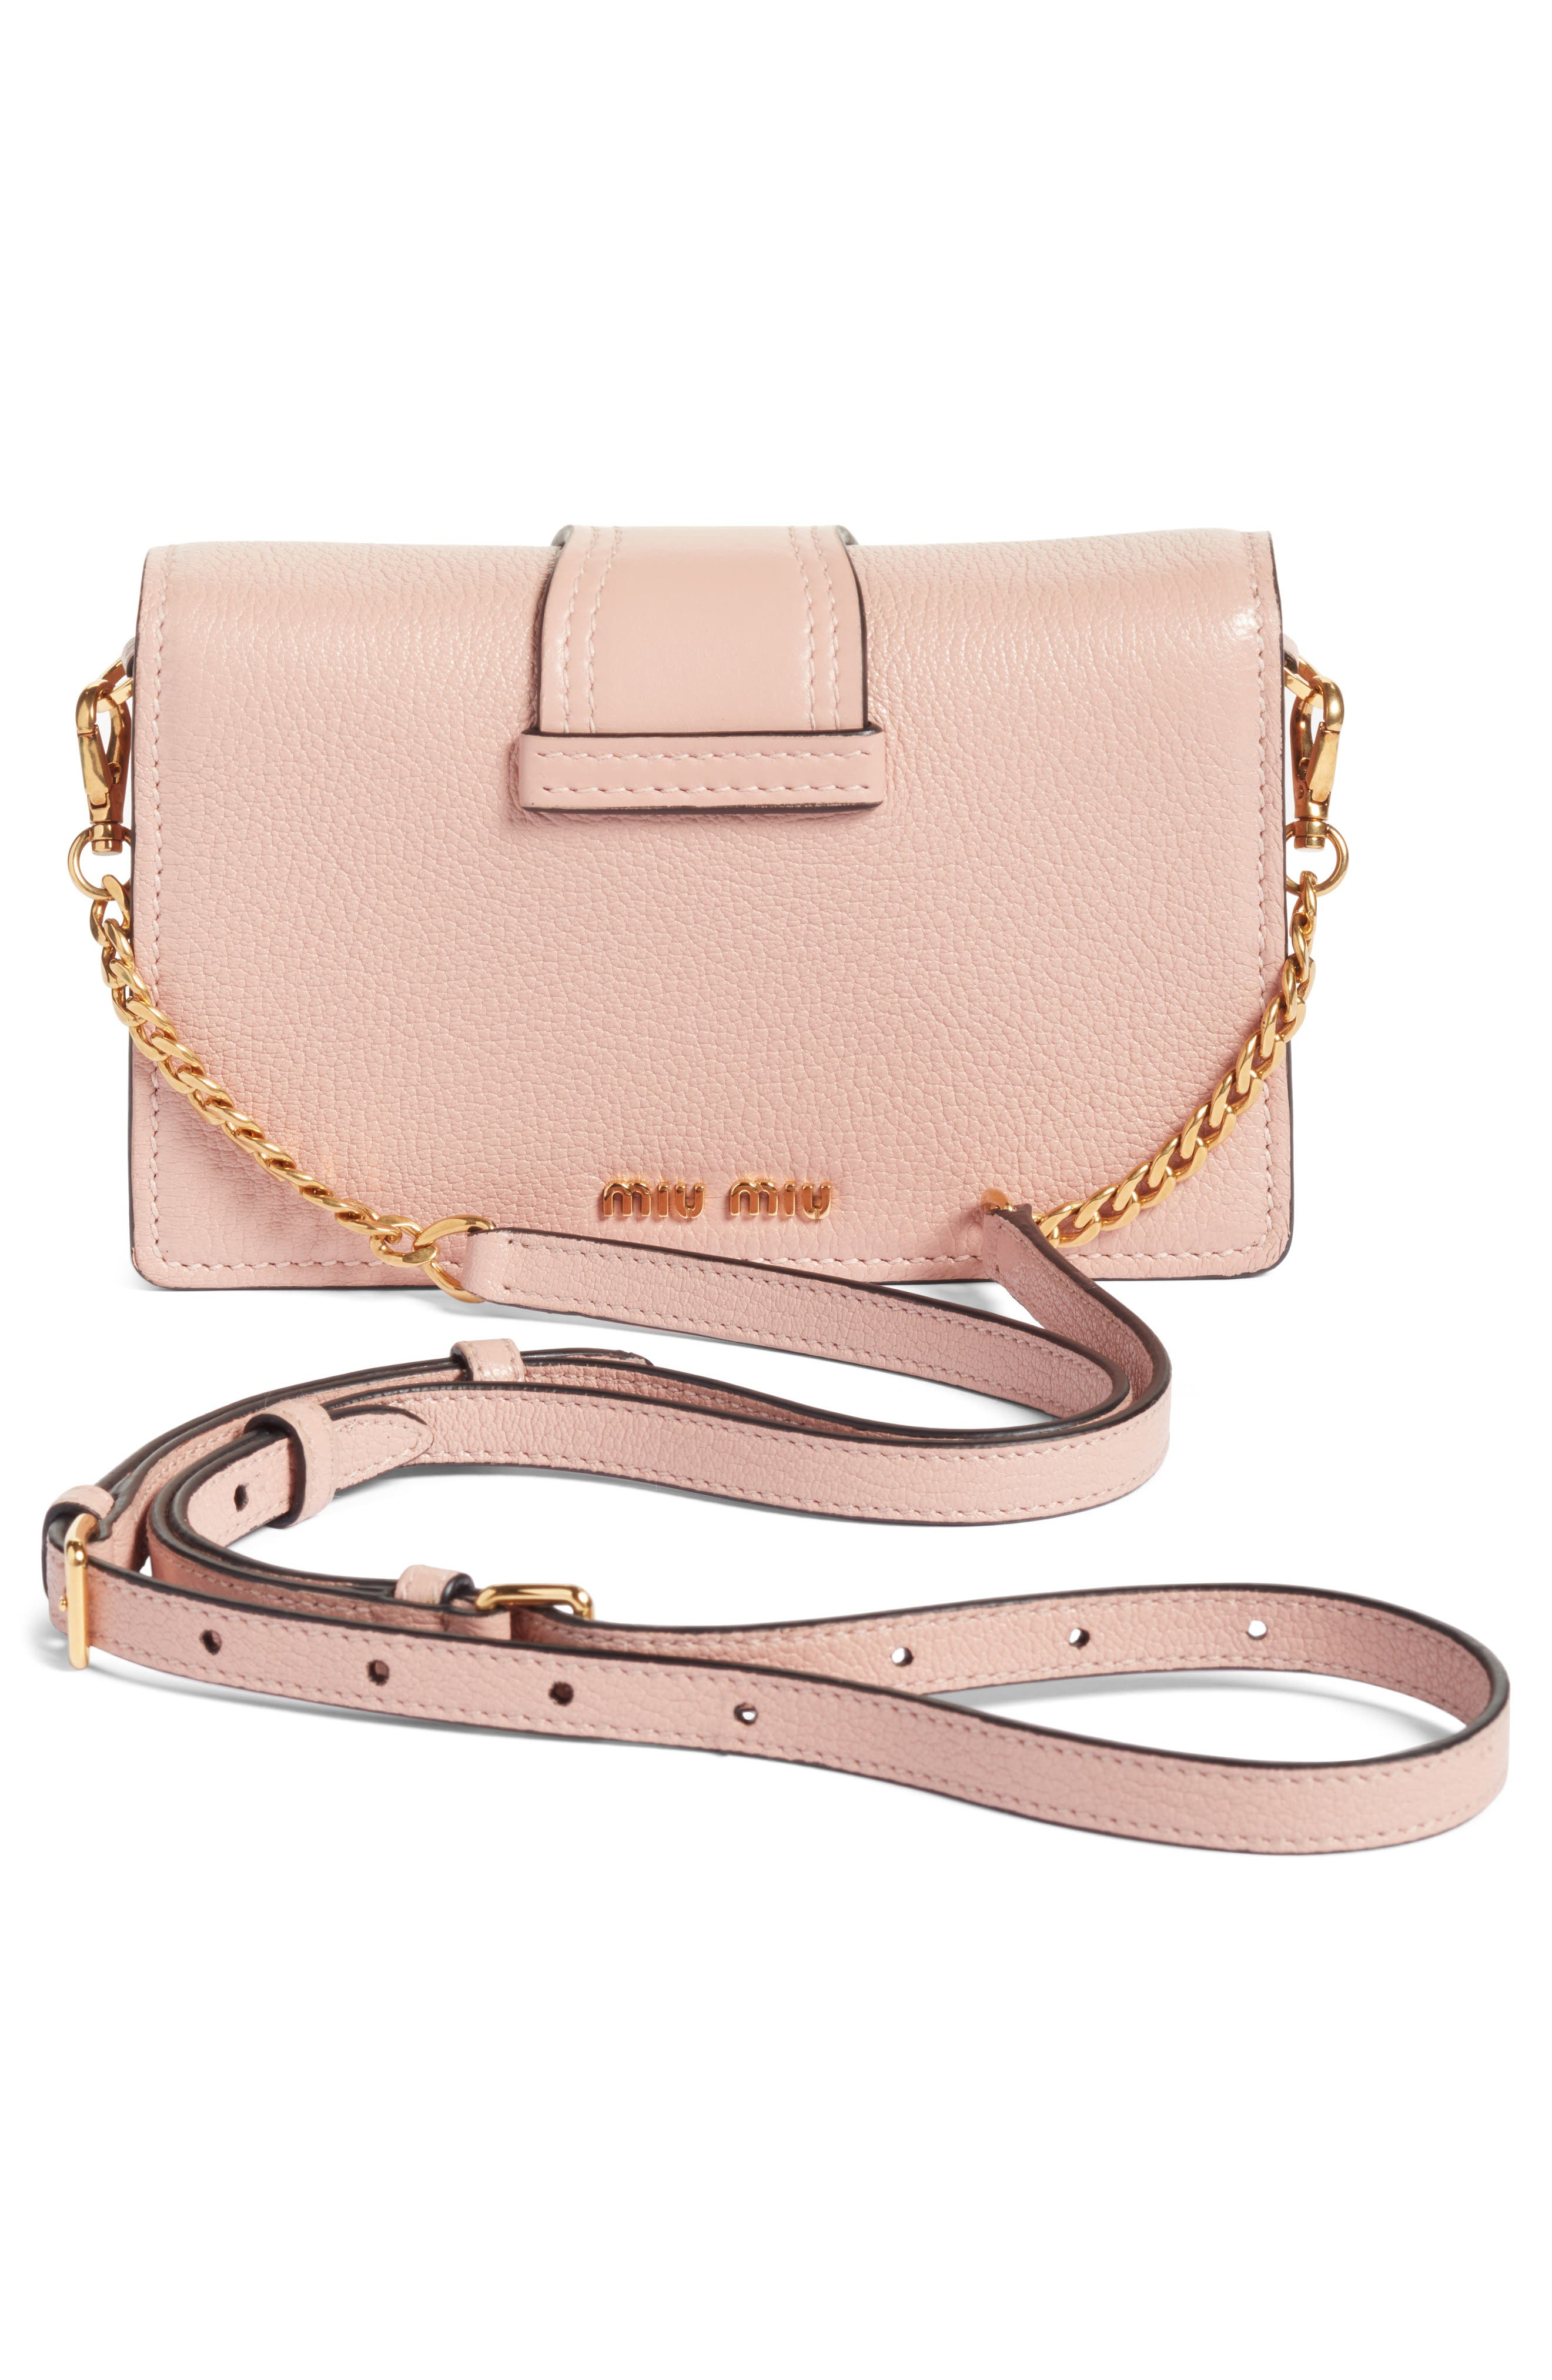 Lady Madras Crystal Embellished Leather Crossbody Bag,                             Alternate thumbnail 3, color,                             Orchidea